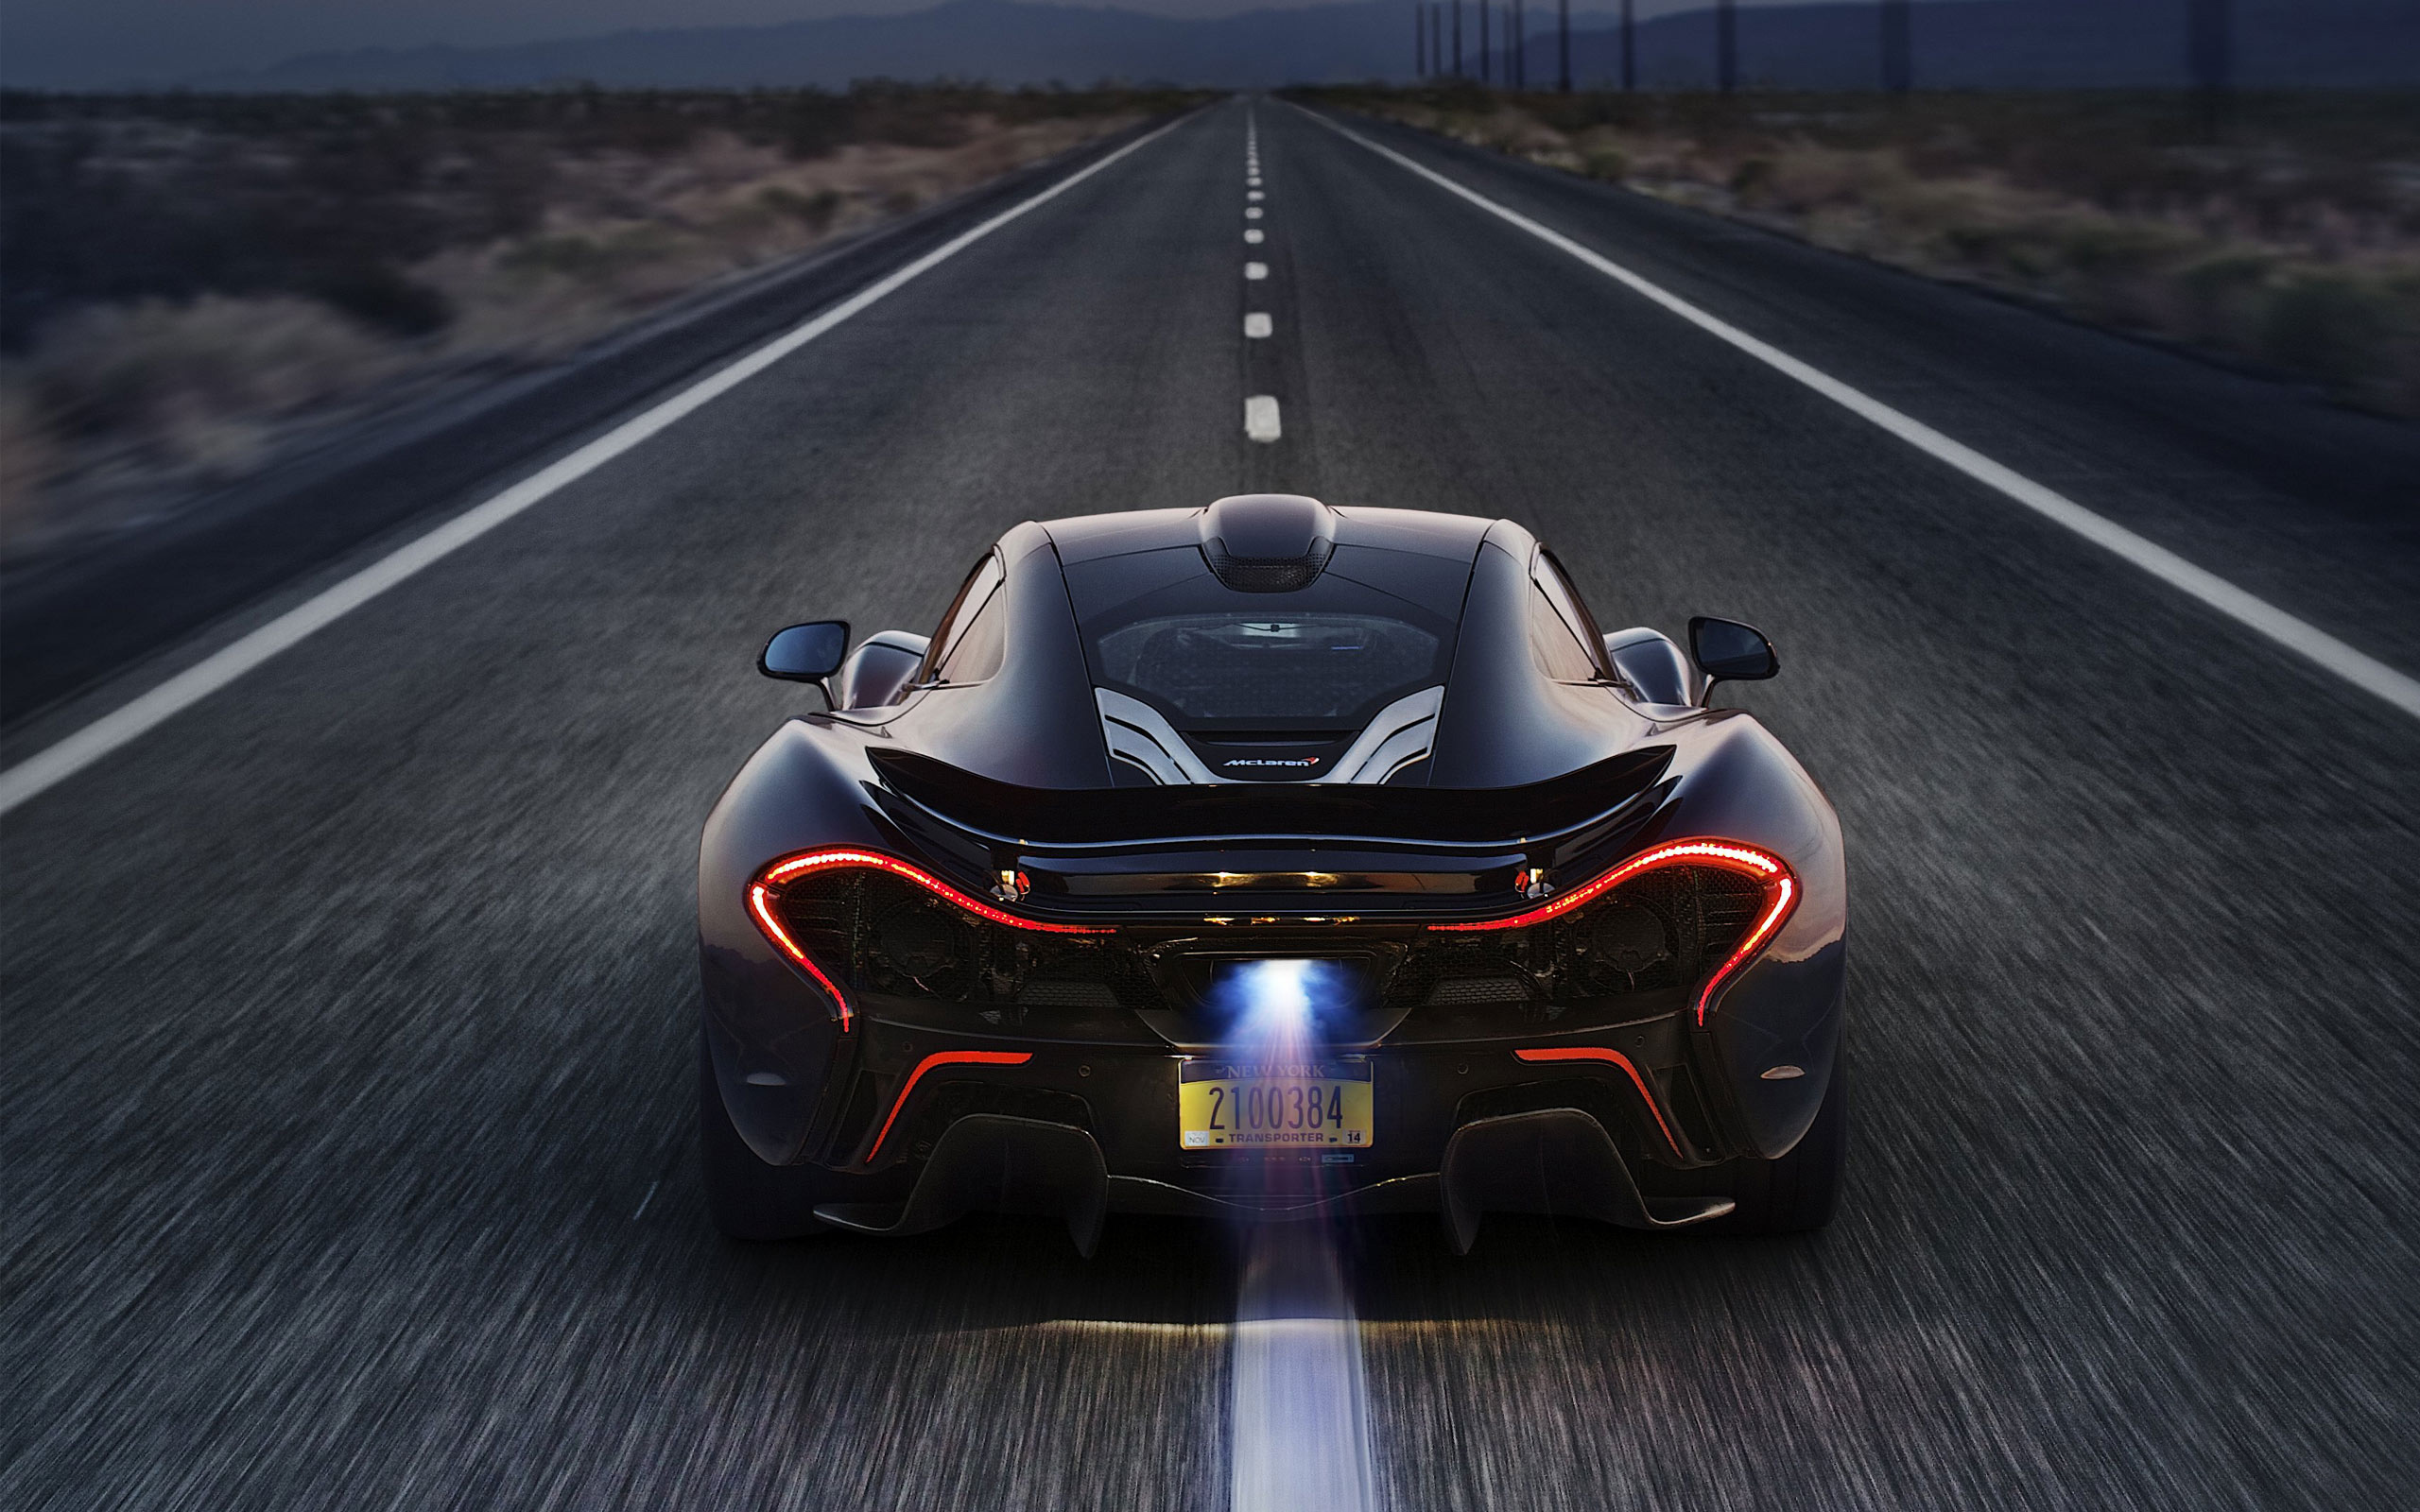 McLaren P1 Supercar – Formula 1 bred hybrid beauty and the beast from UK